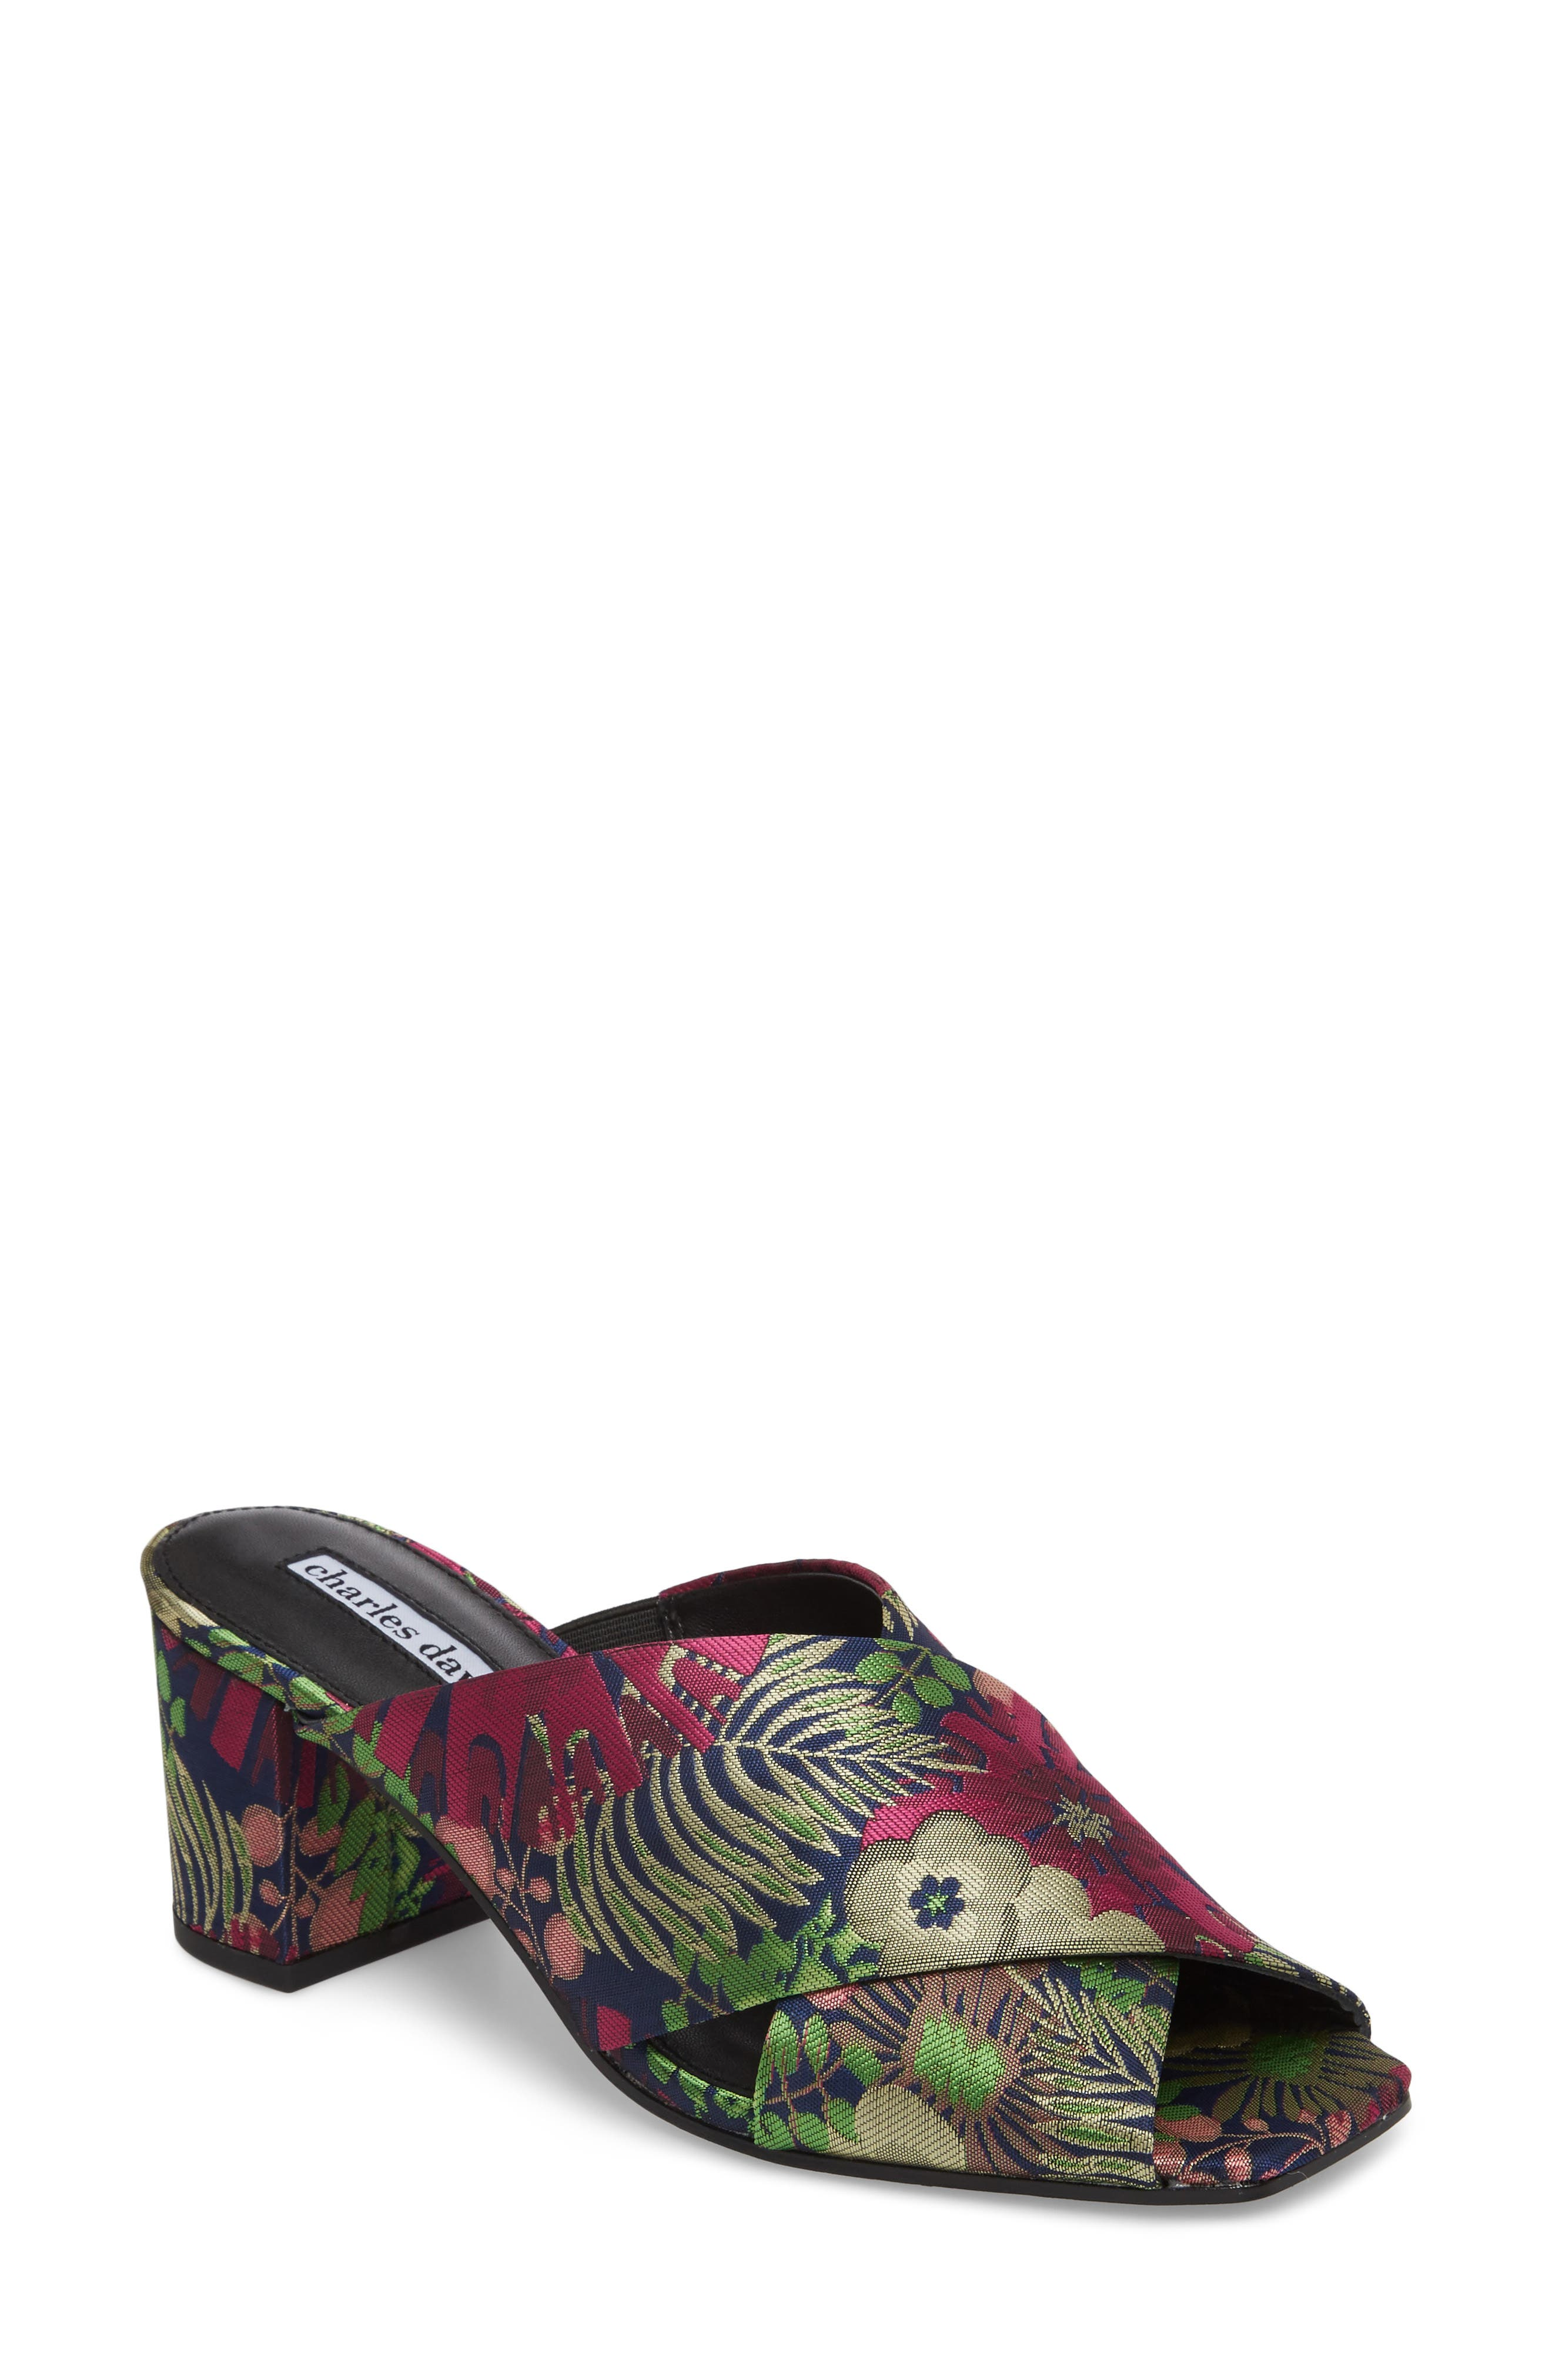 Crissaly Slide Sandal,                         Main,                         color, Green Multi Floral Fabric